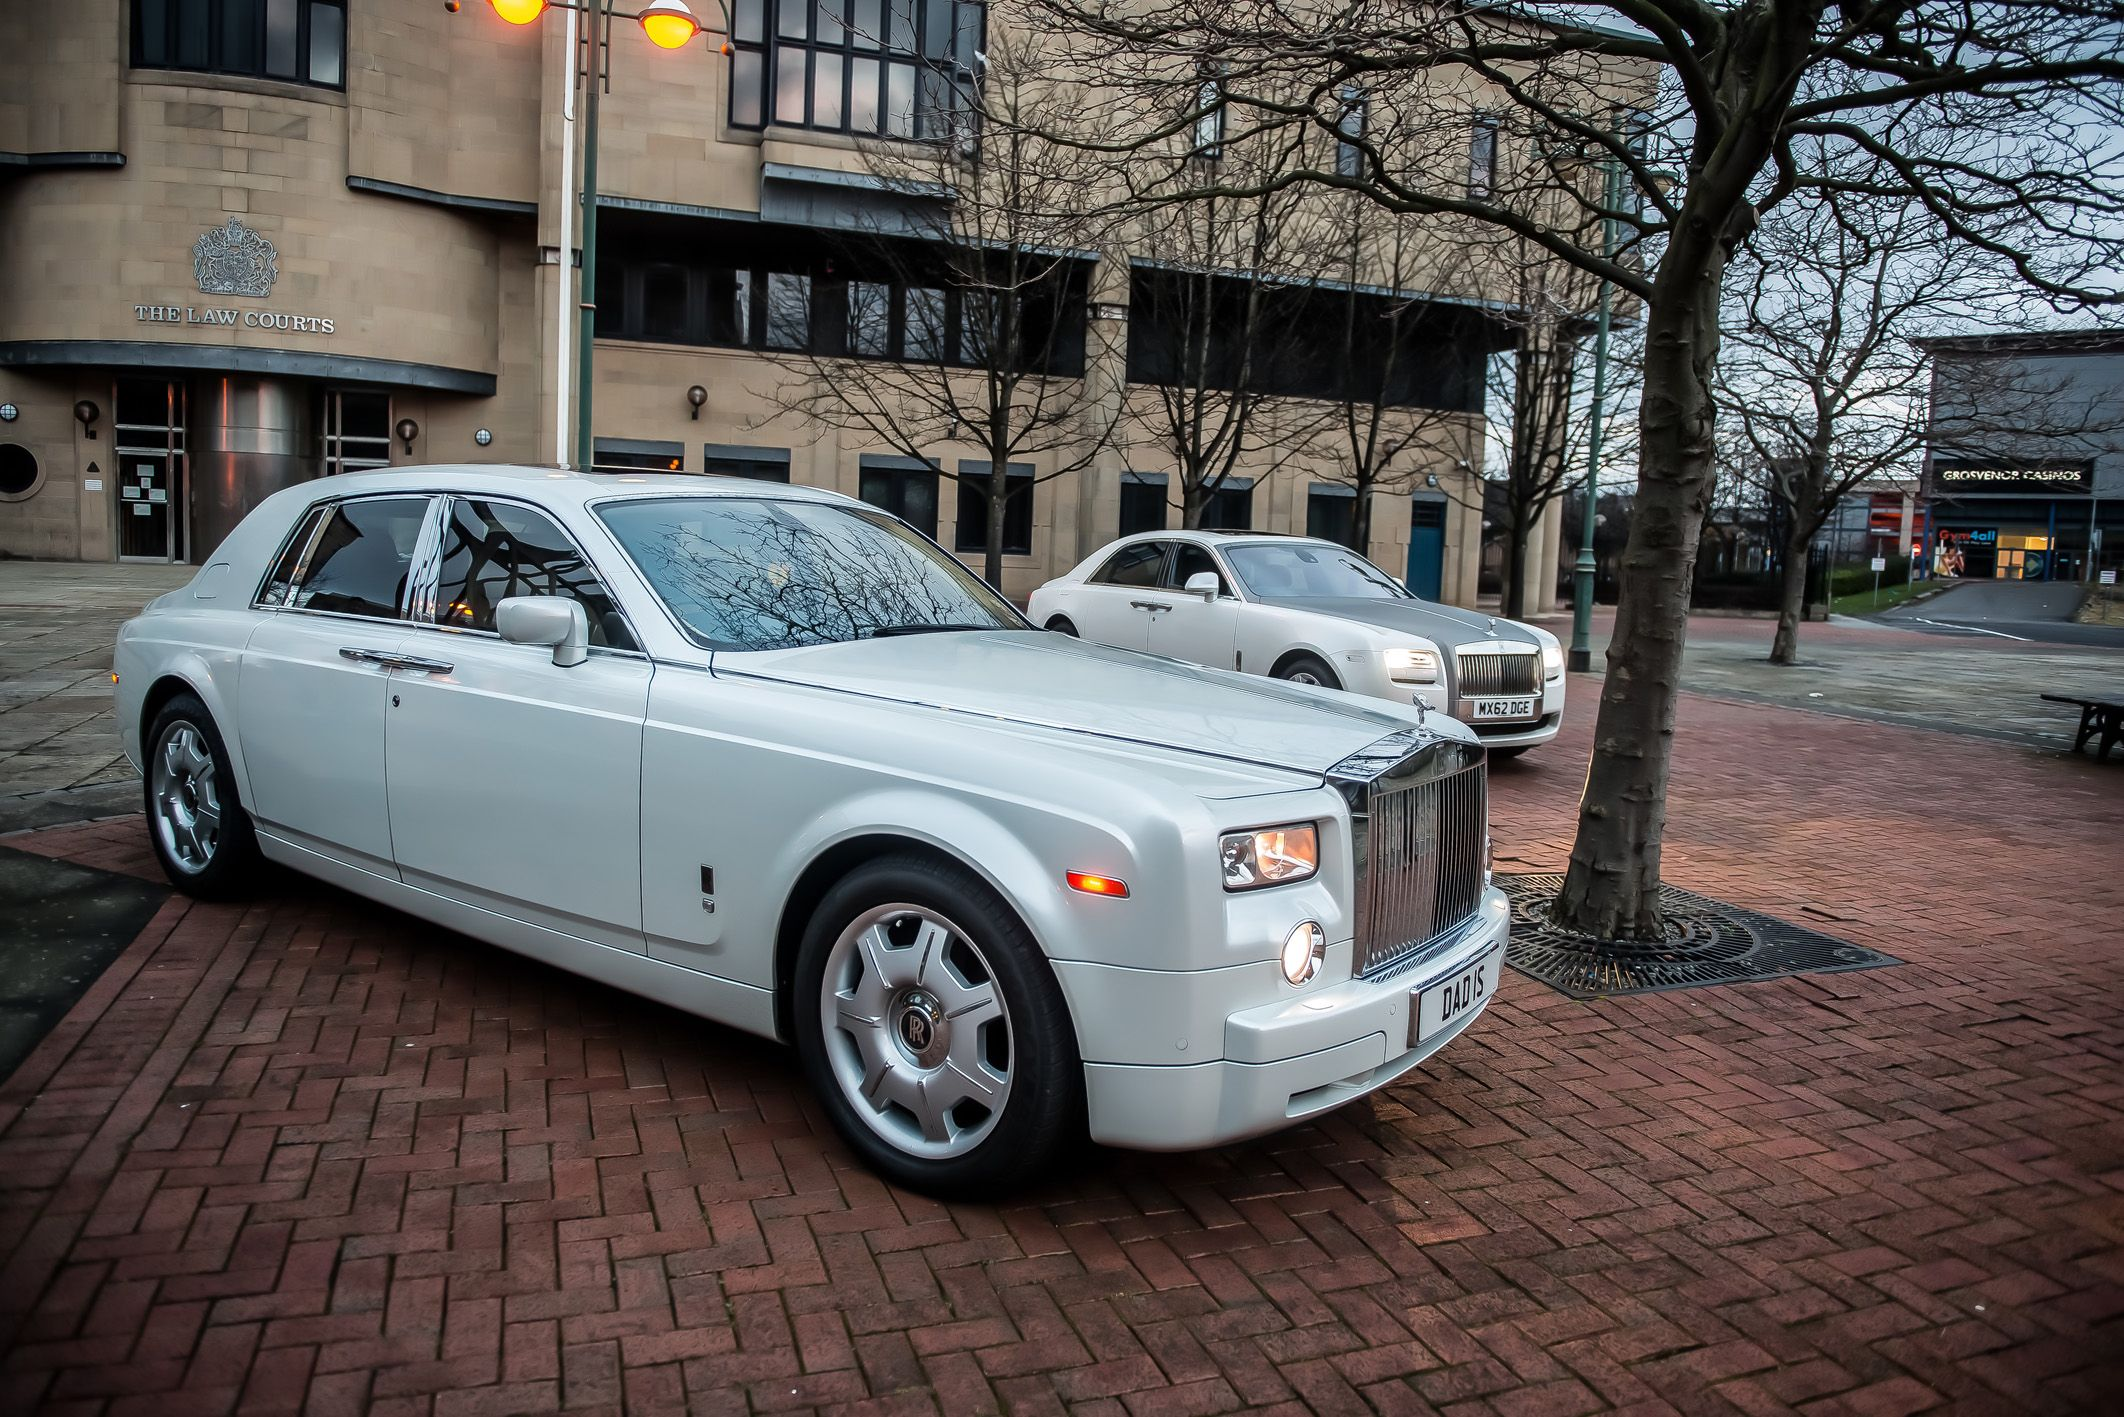 Platinum Rolls Royce Phantom Hire Huddersfield | Luxury | Pinterest ...